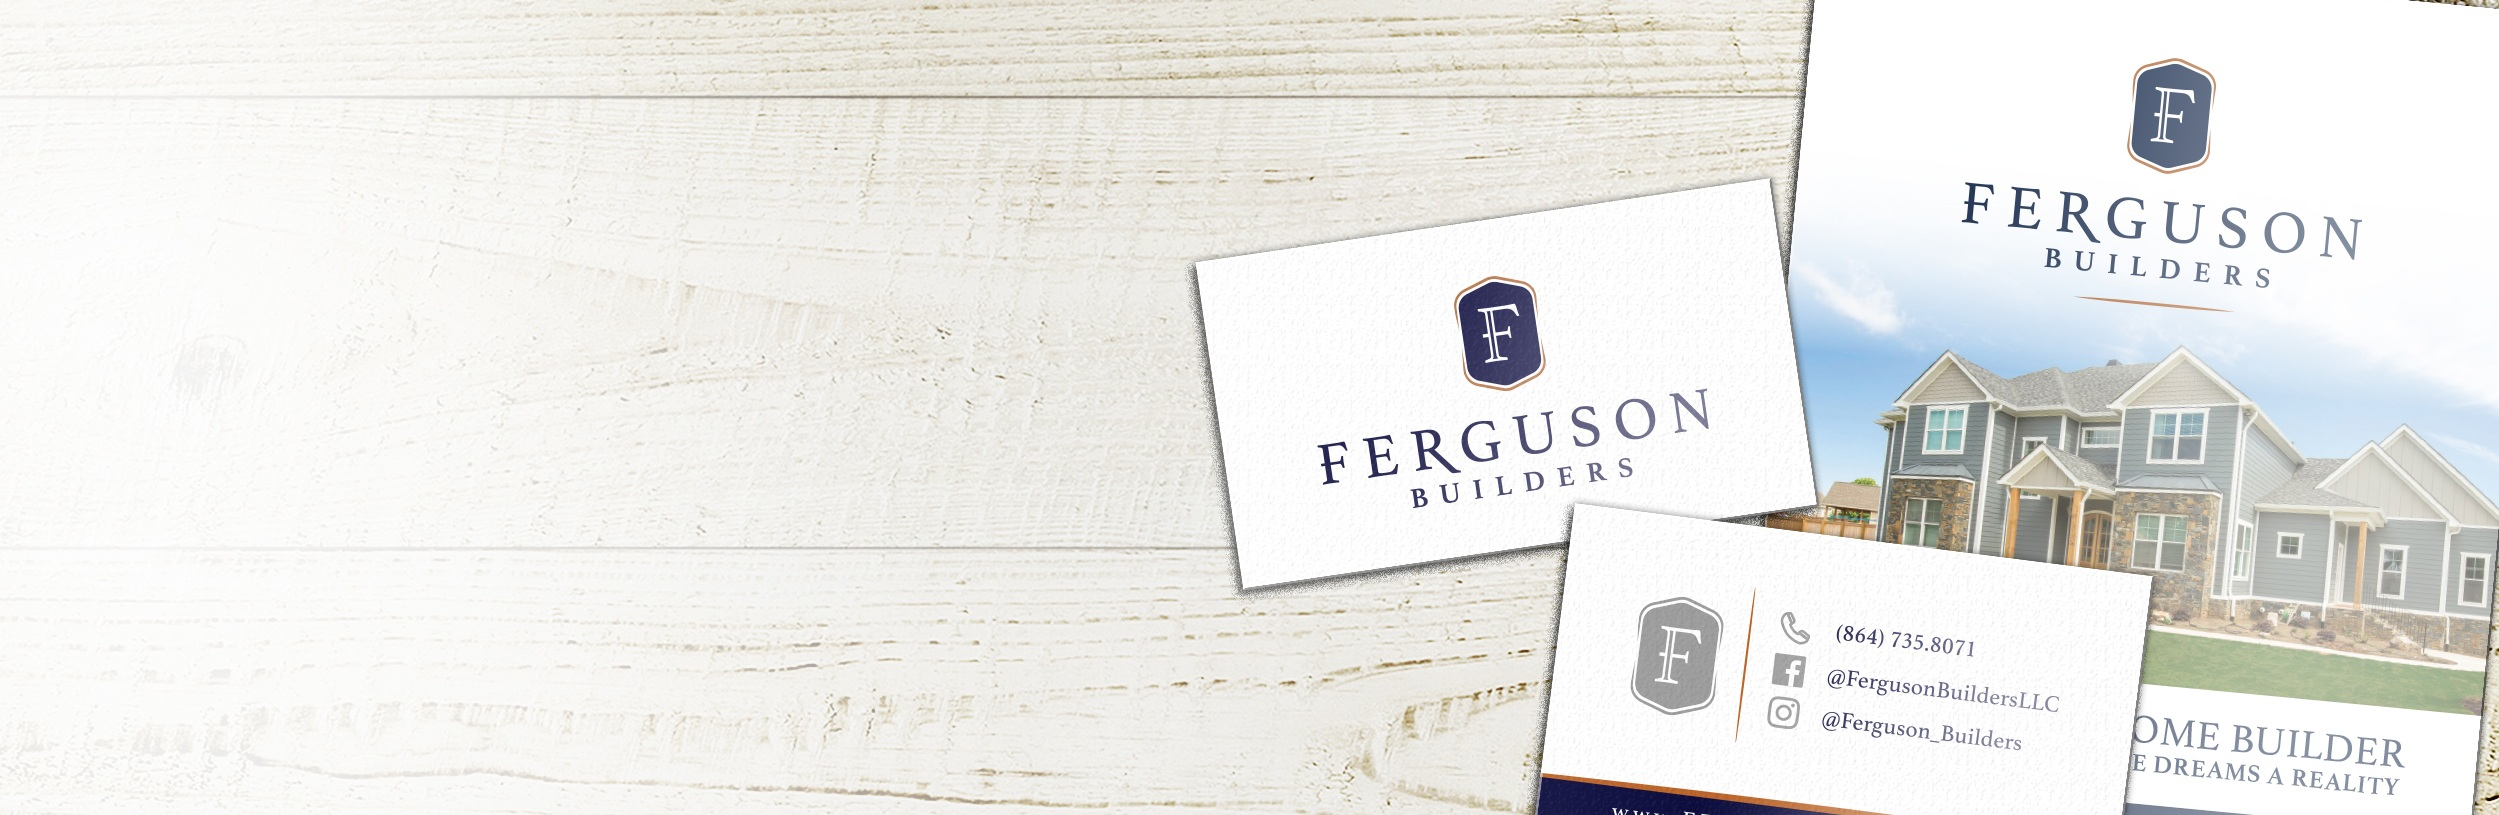 Ferguson Builders - Logo, Brand, Website Design